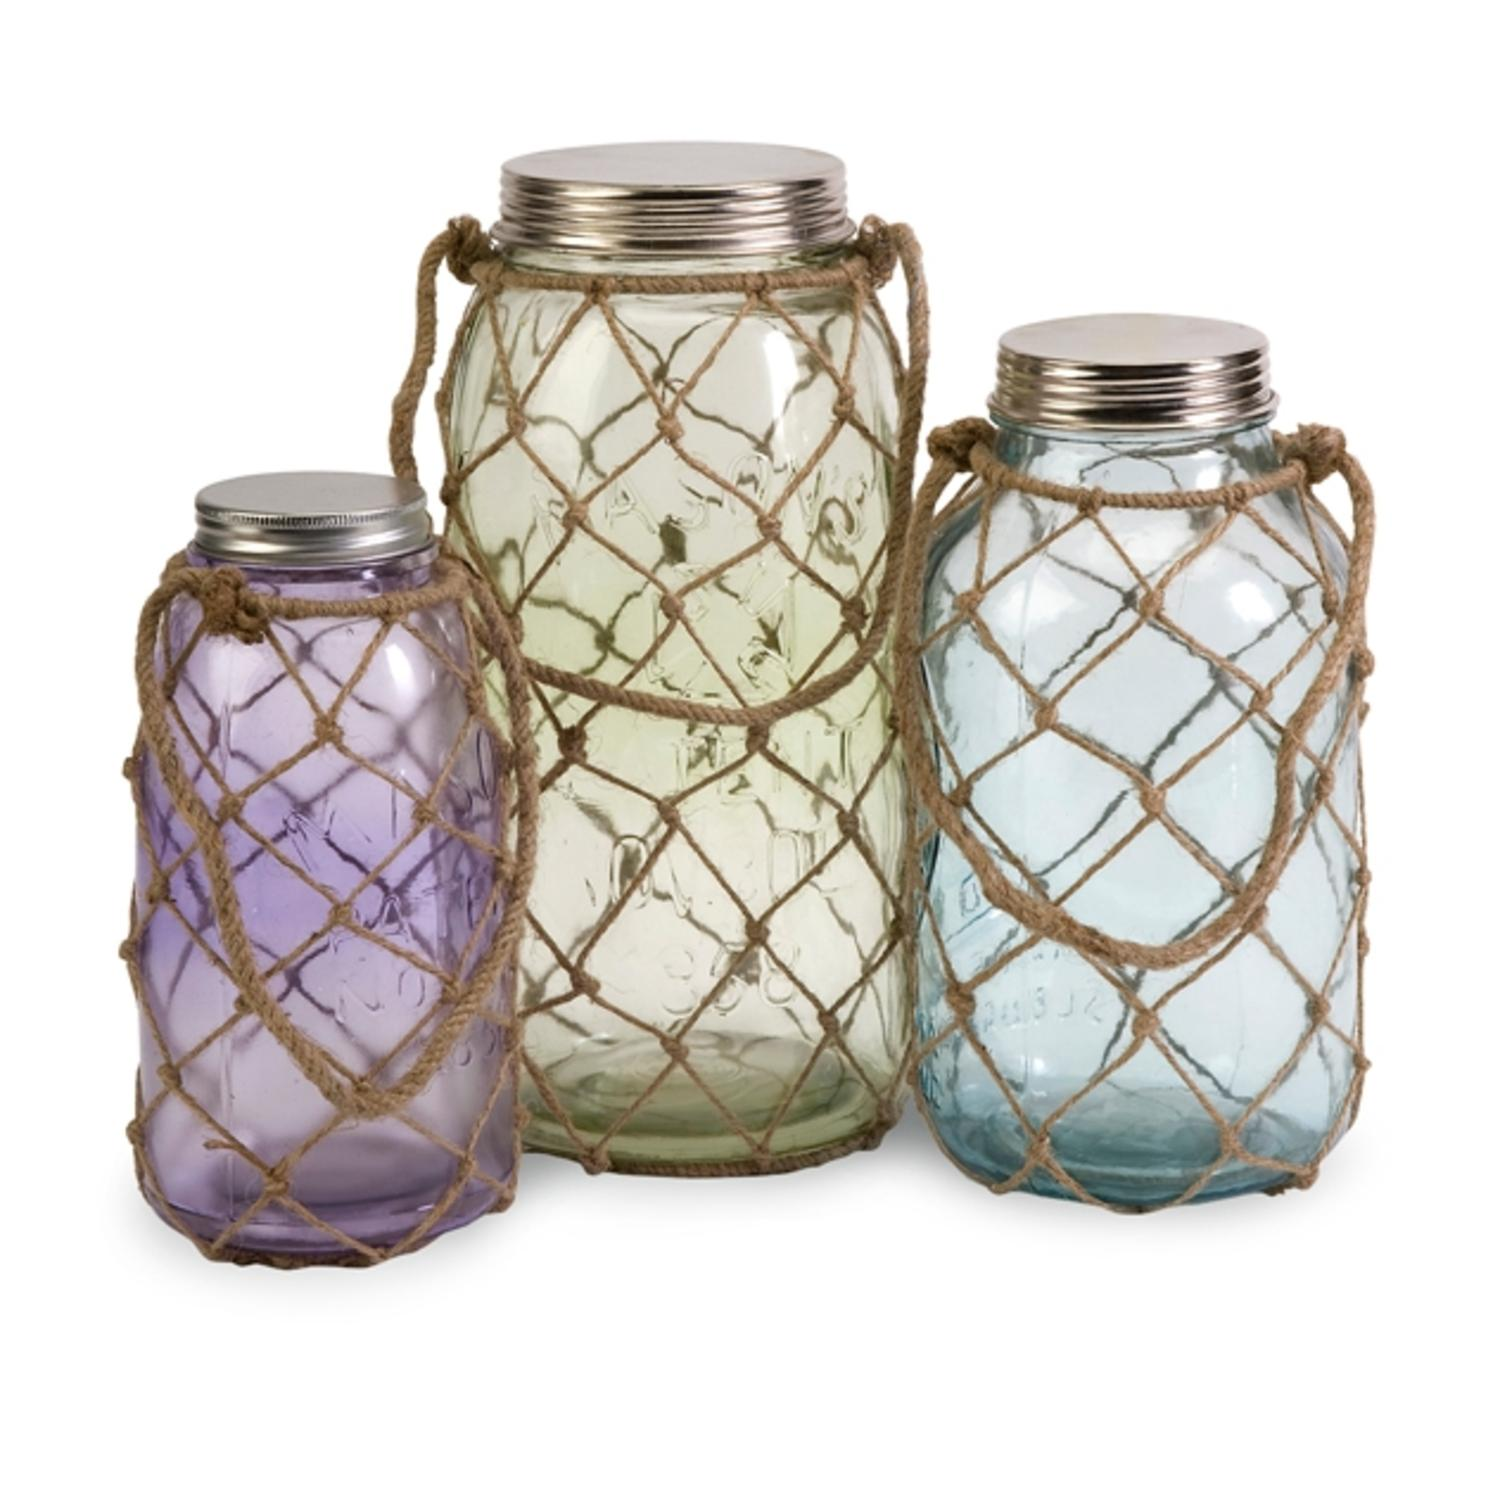 Set of 3 Pastel Lidded Glass Jars with Jute Fishing Net Overlay and Handles